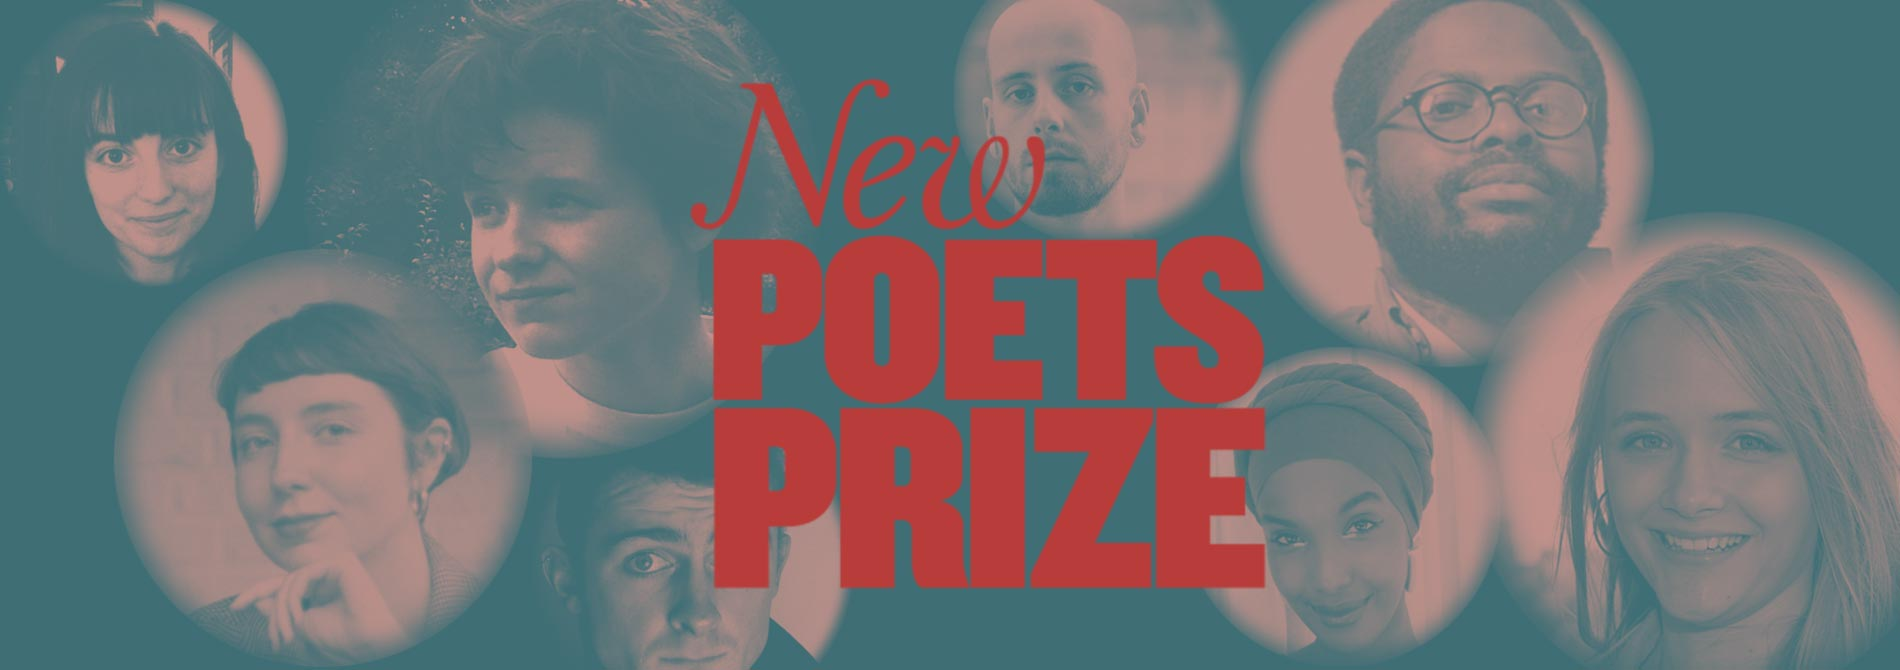 New Poets Prize